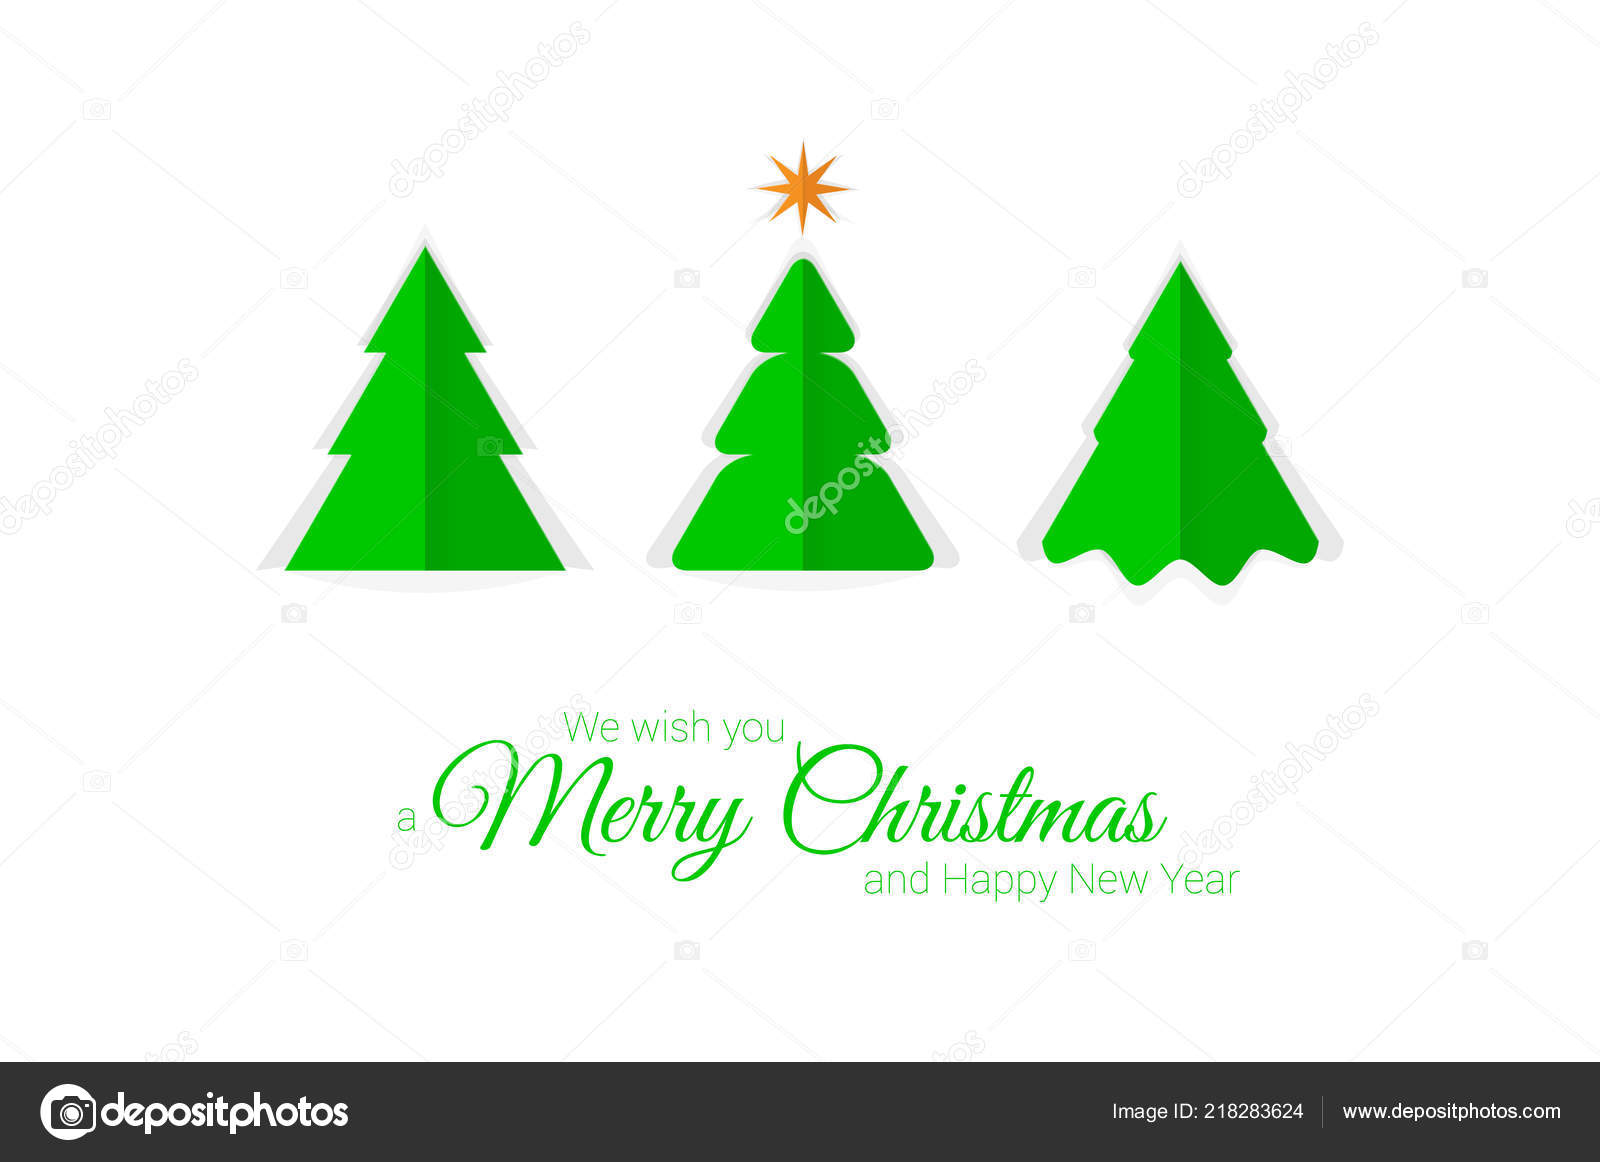 Paper Cut Christmas Trees Vector Christmas Greeting Card Template